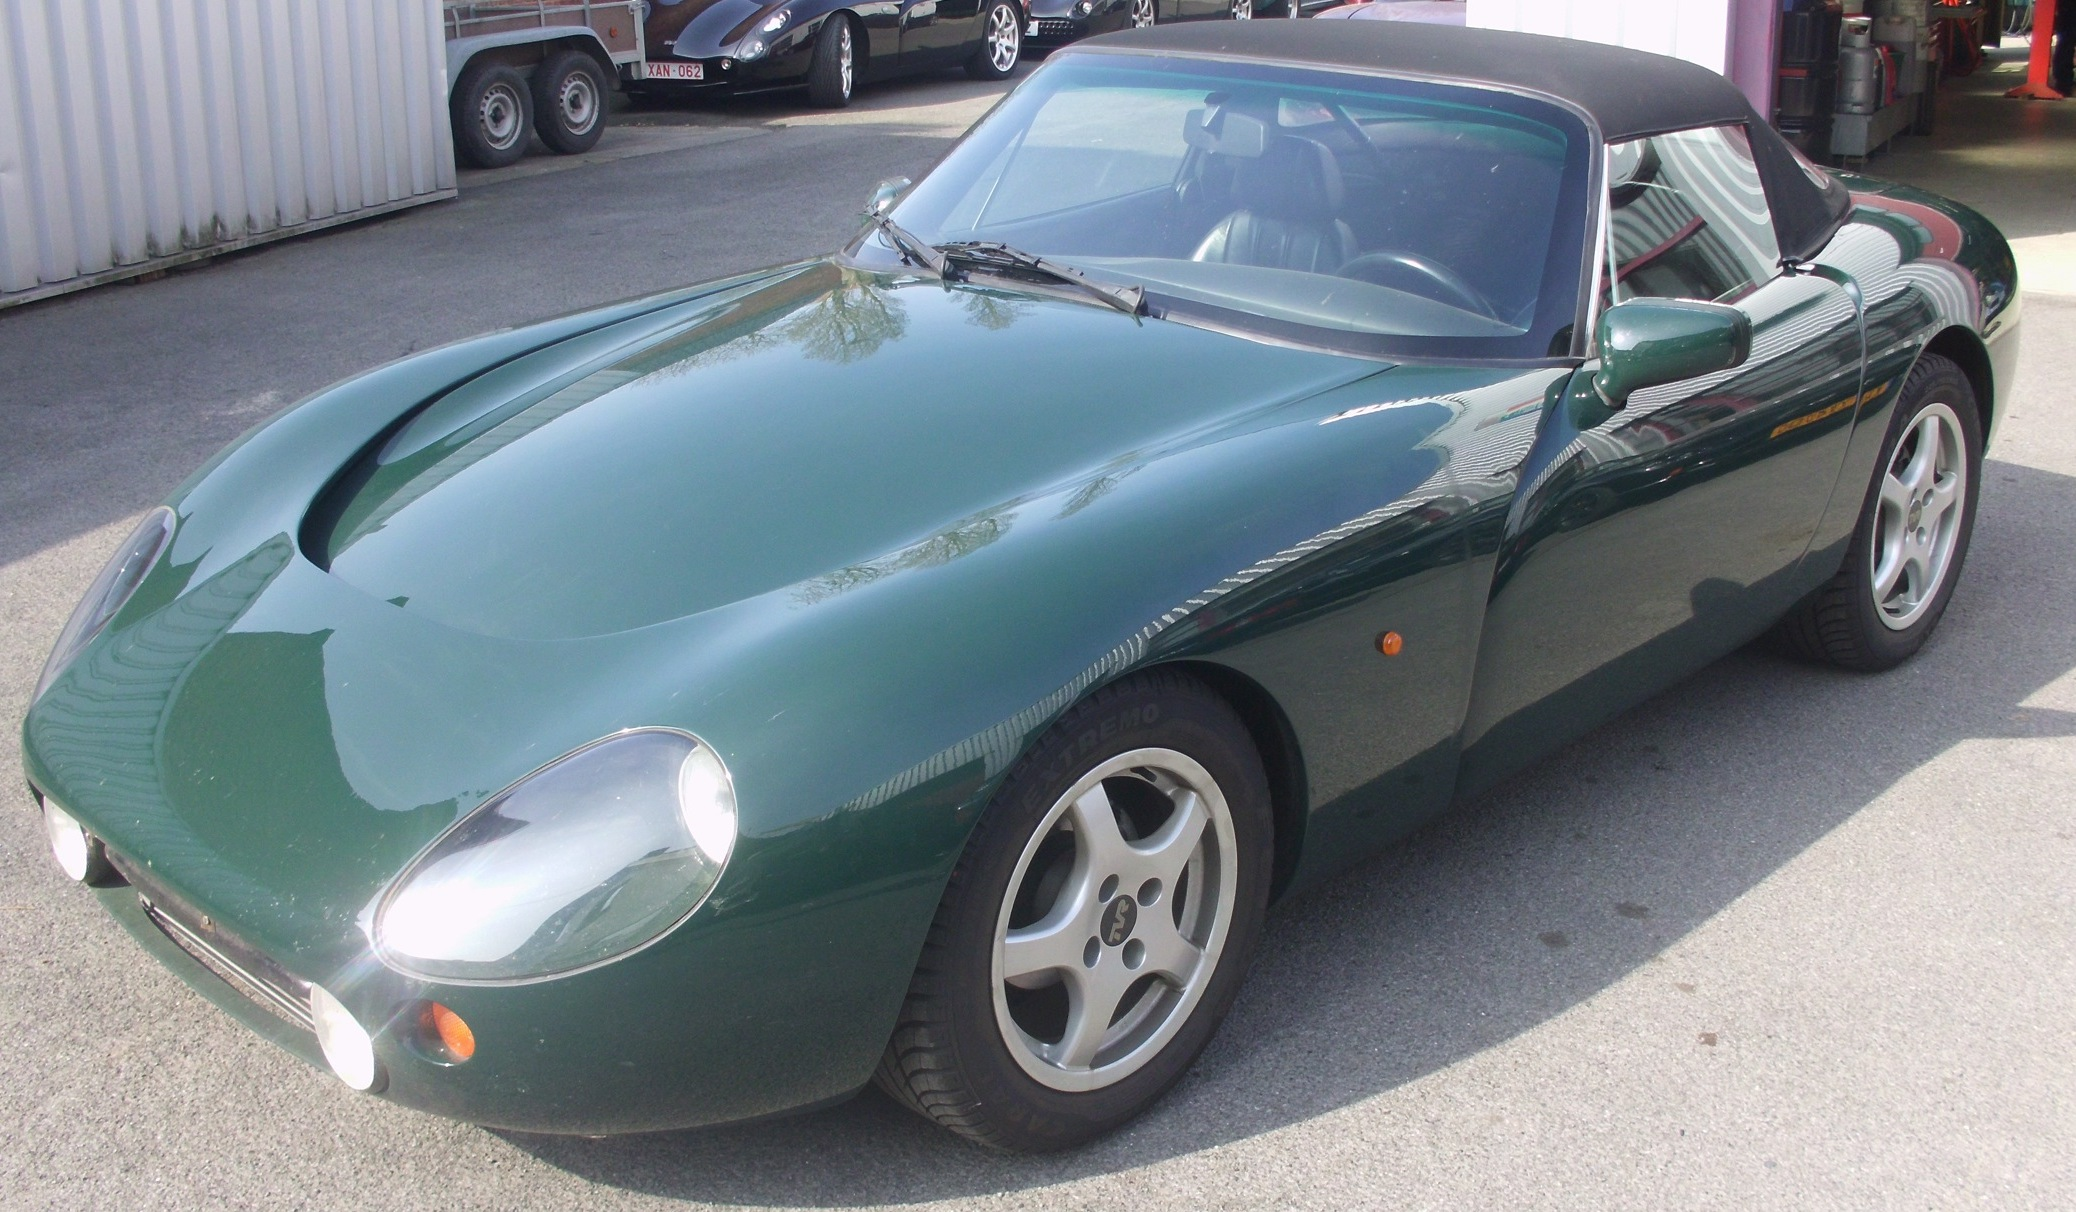 tvr griffith 4.3-pic. 3